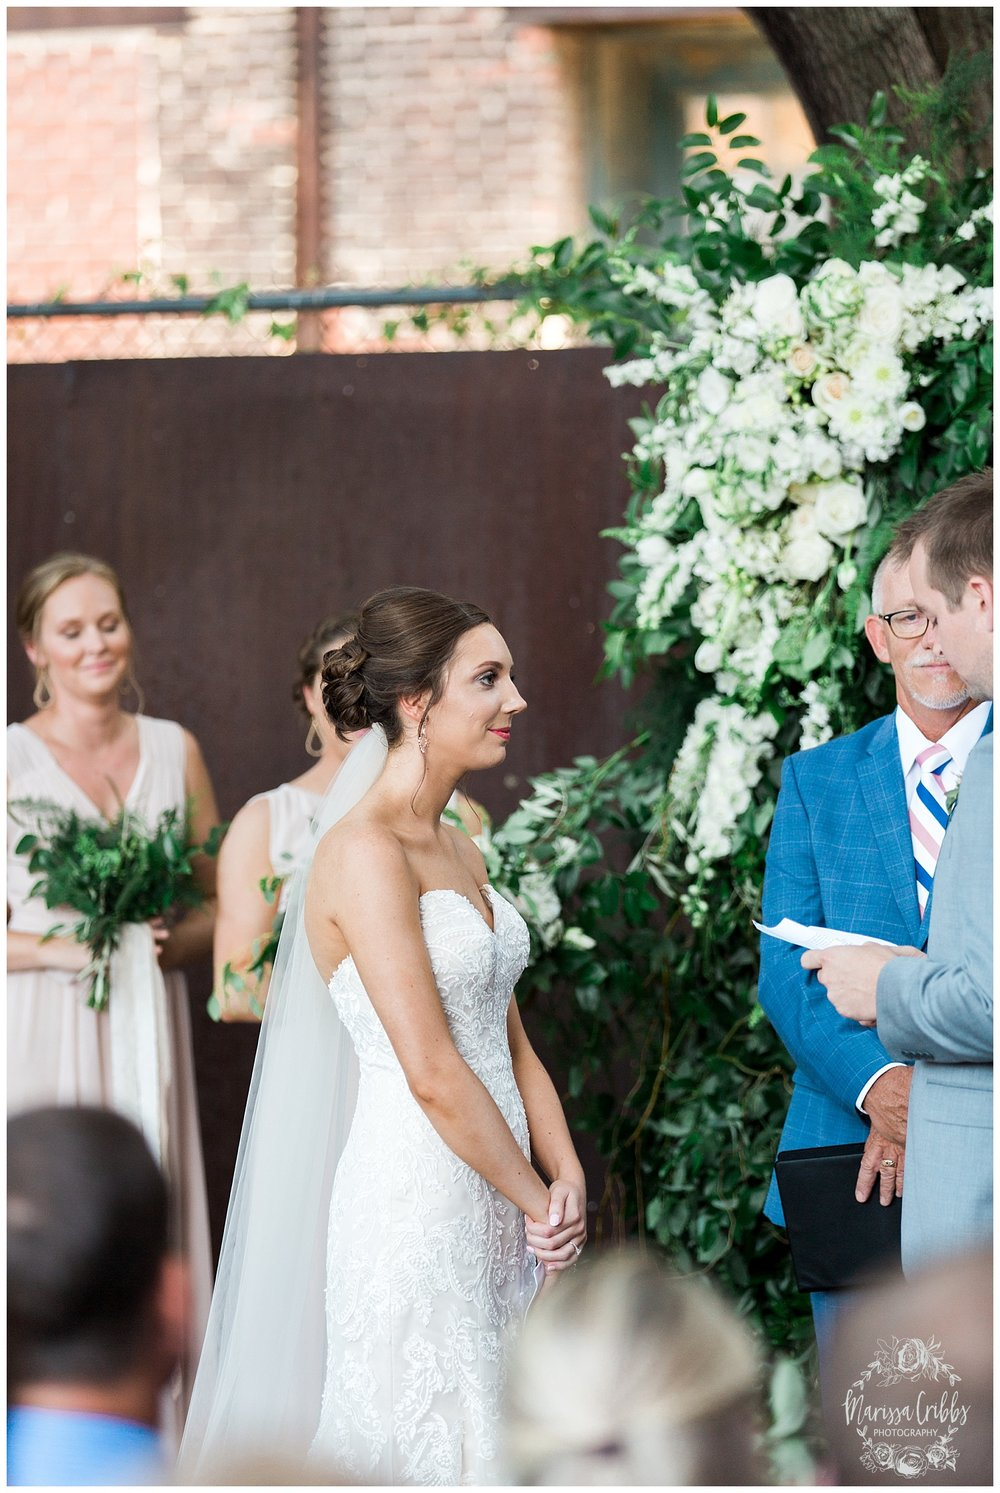 FEASTS OF FANCY KC WEDDING | THE HOBBS WEDDING KANSAS CITY | MARISSA CRIBBS PHOTOGRAPHY_2231.jpg